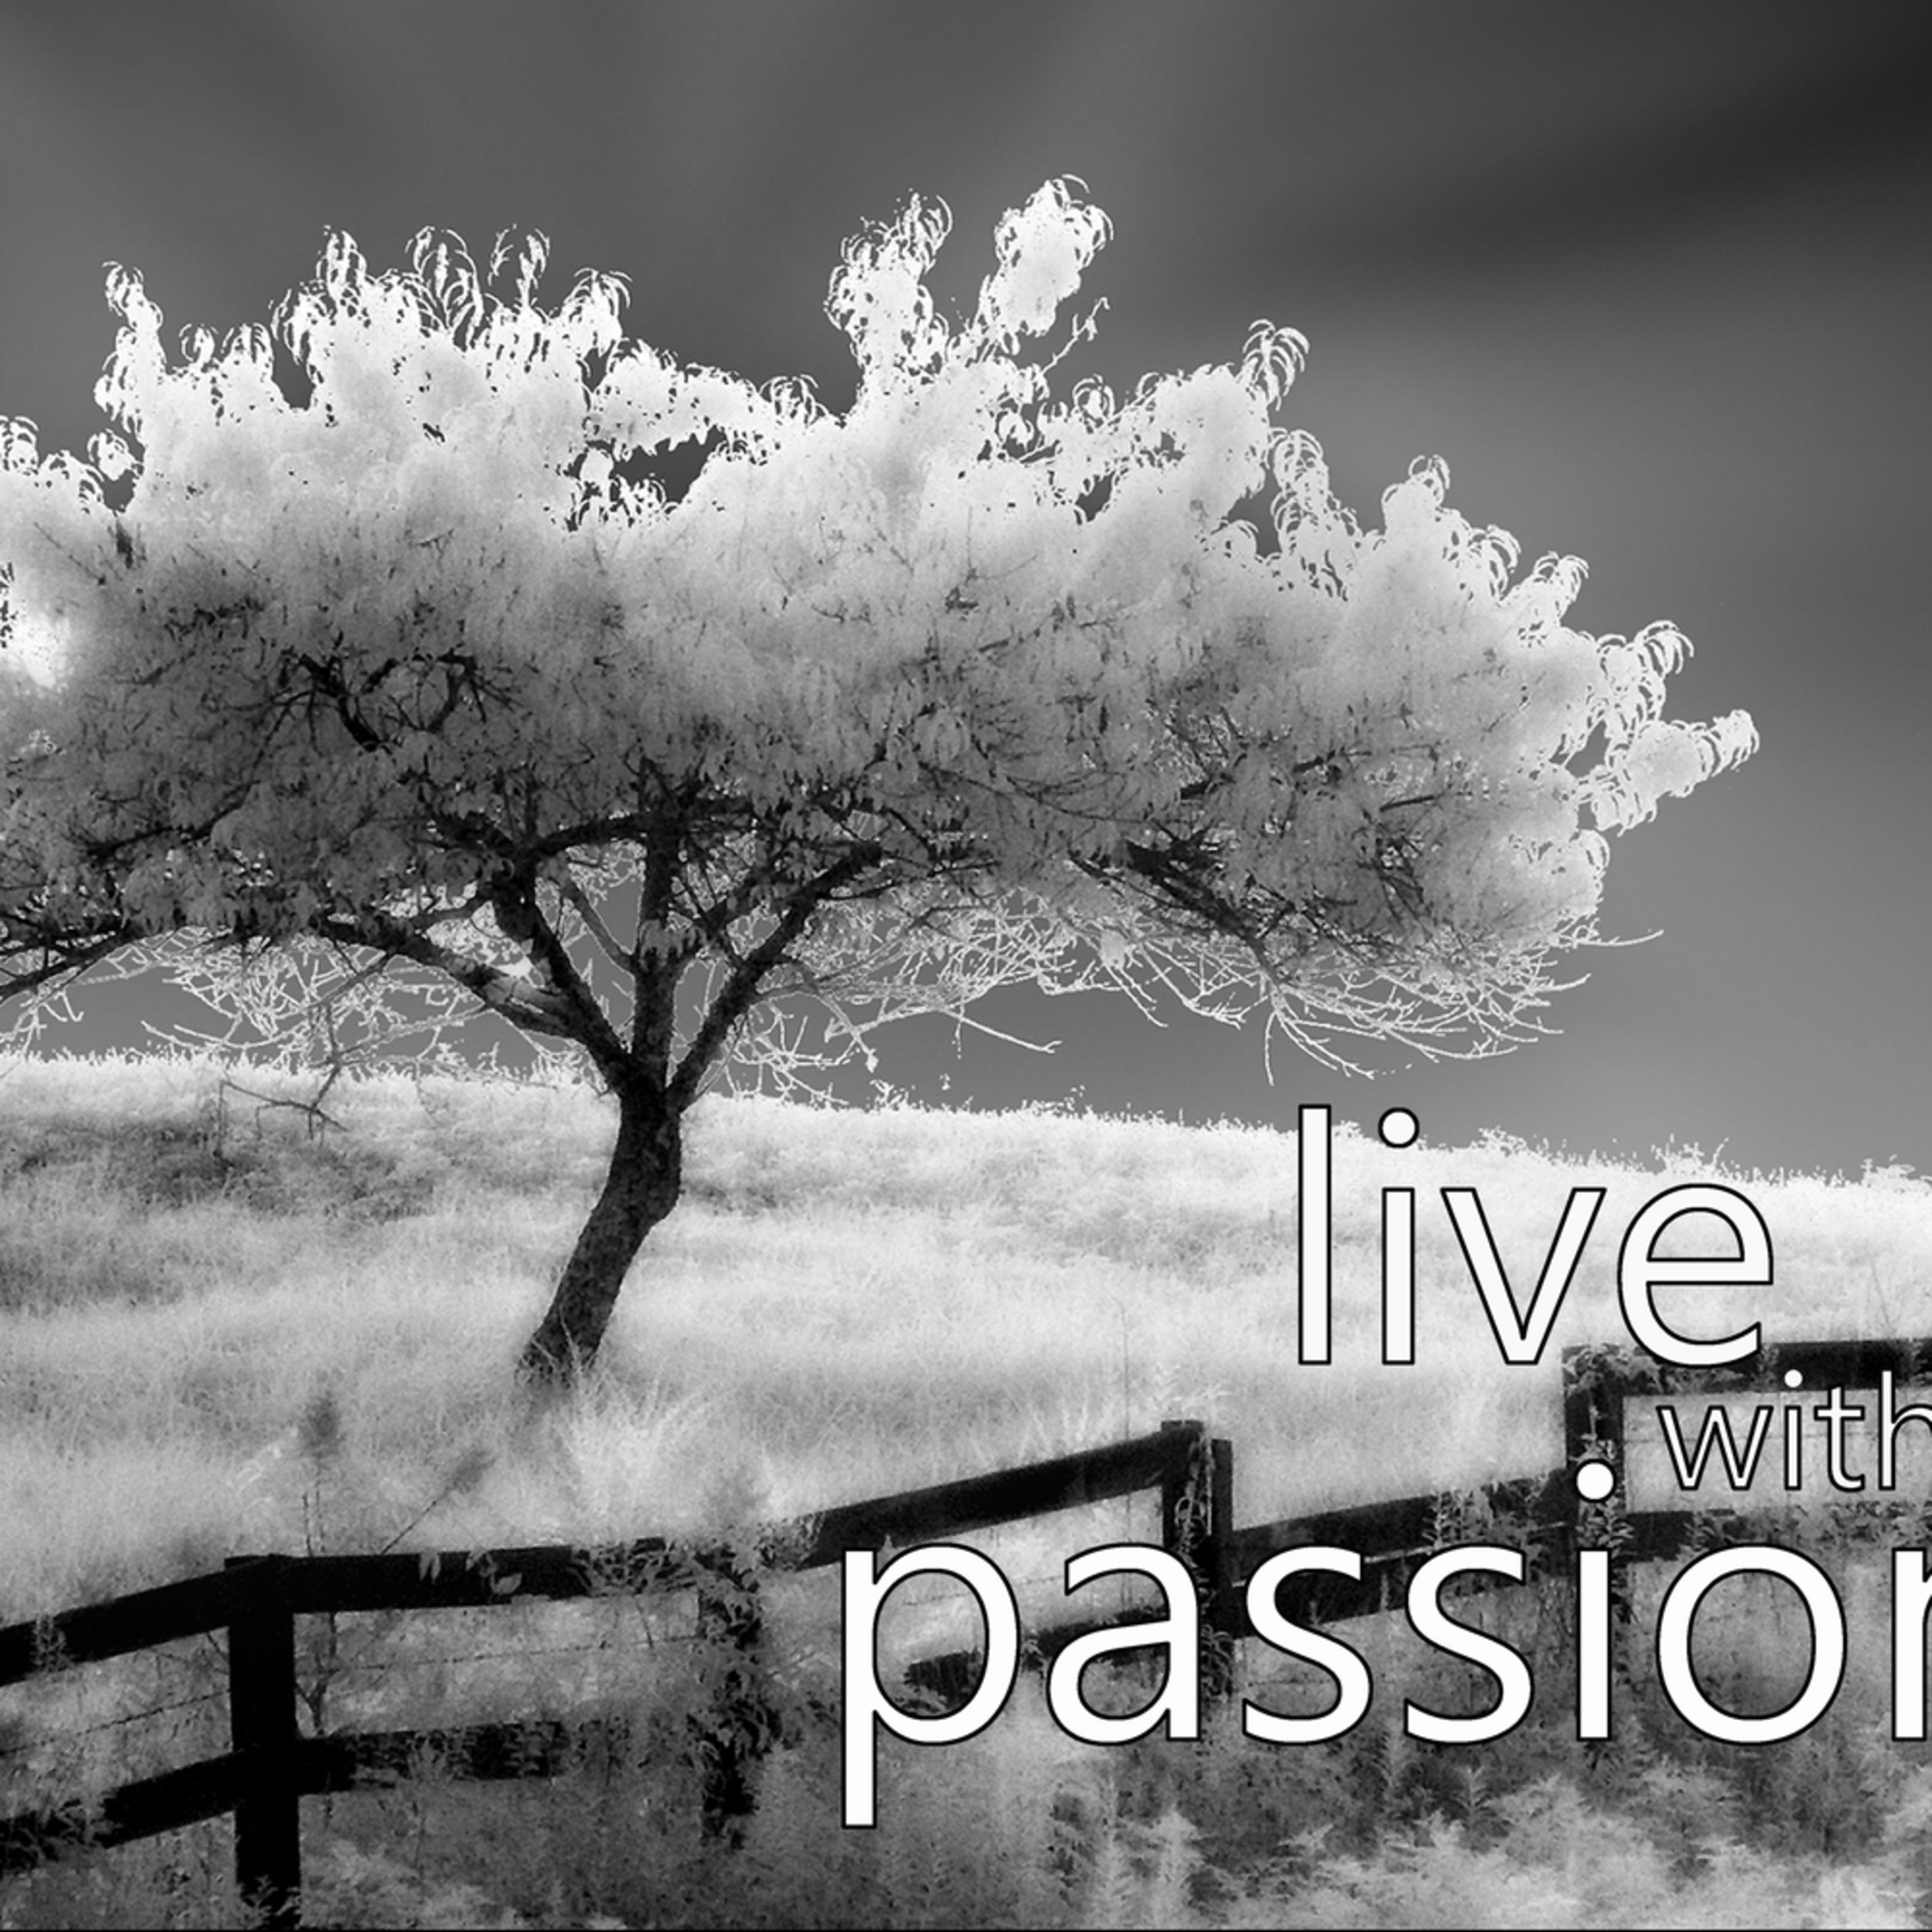 Live with passion hxviri